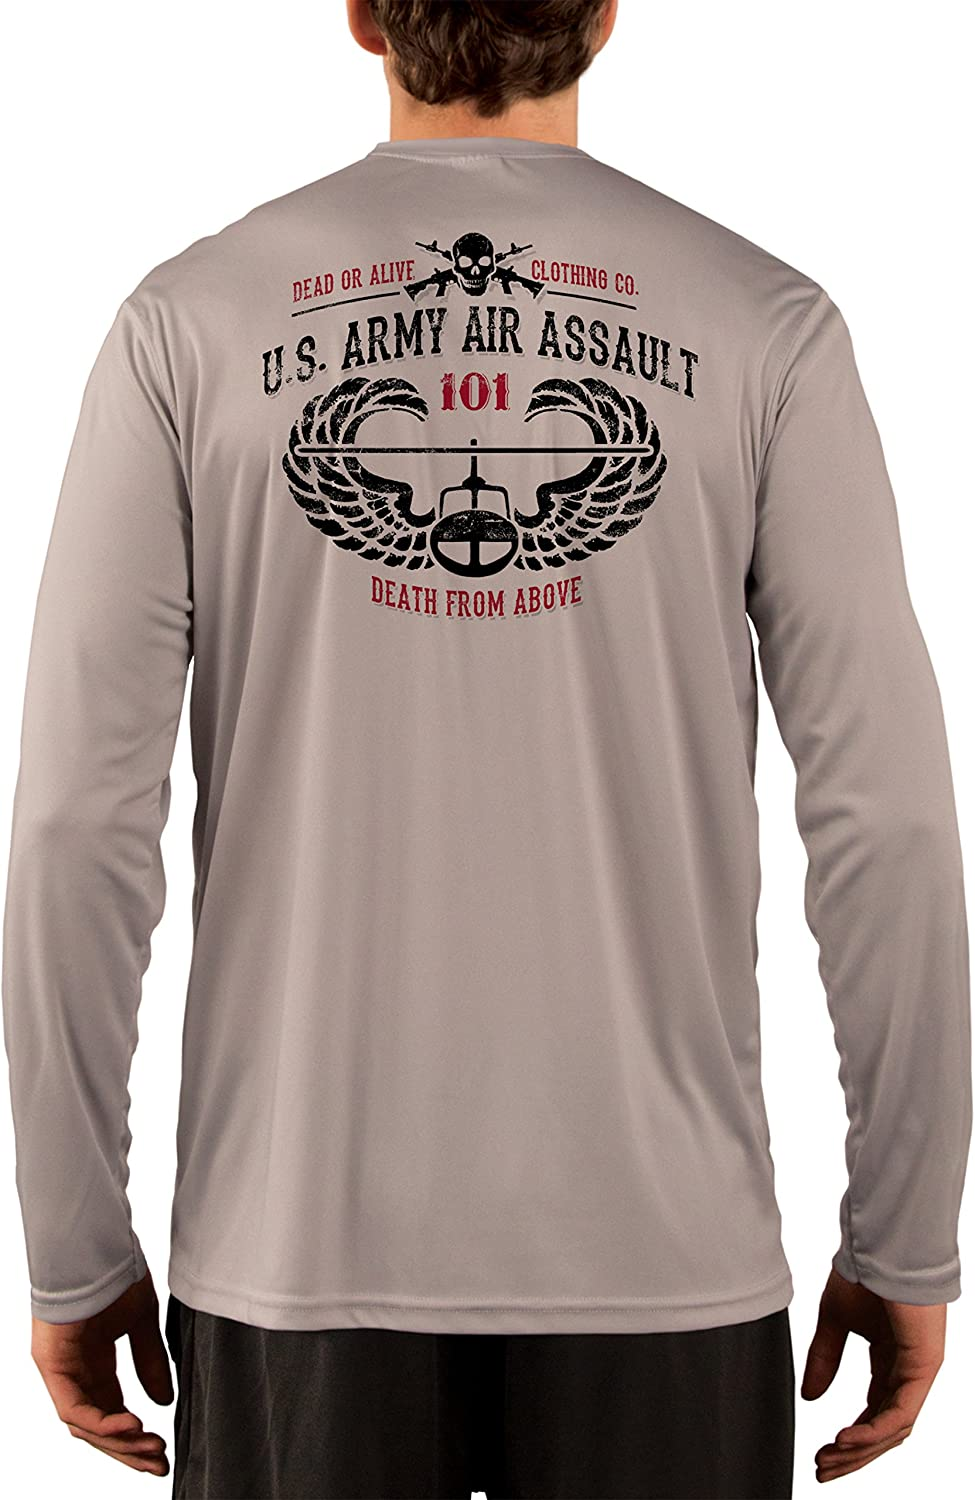 Long Sleeve T-Shirt Medium Pearl Grey Dead Or Alive Clothing Womens Come Take It UPF 50